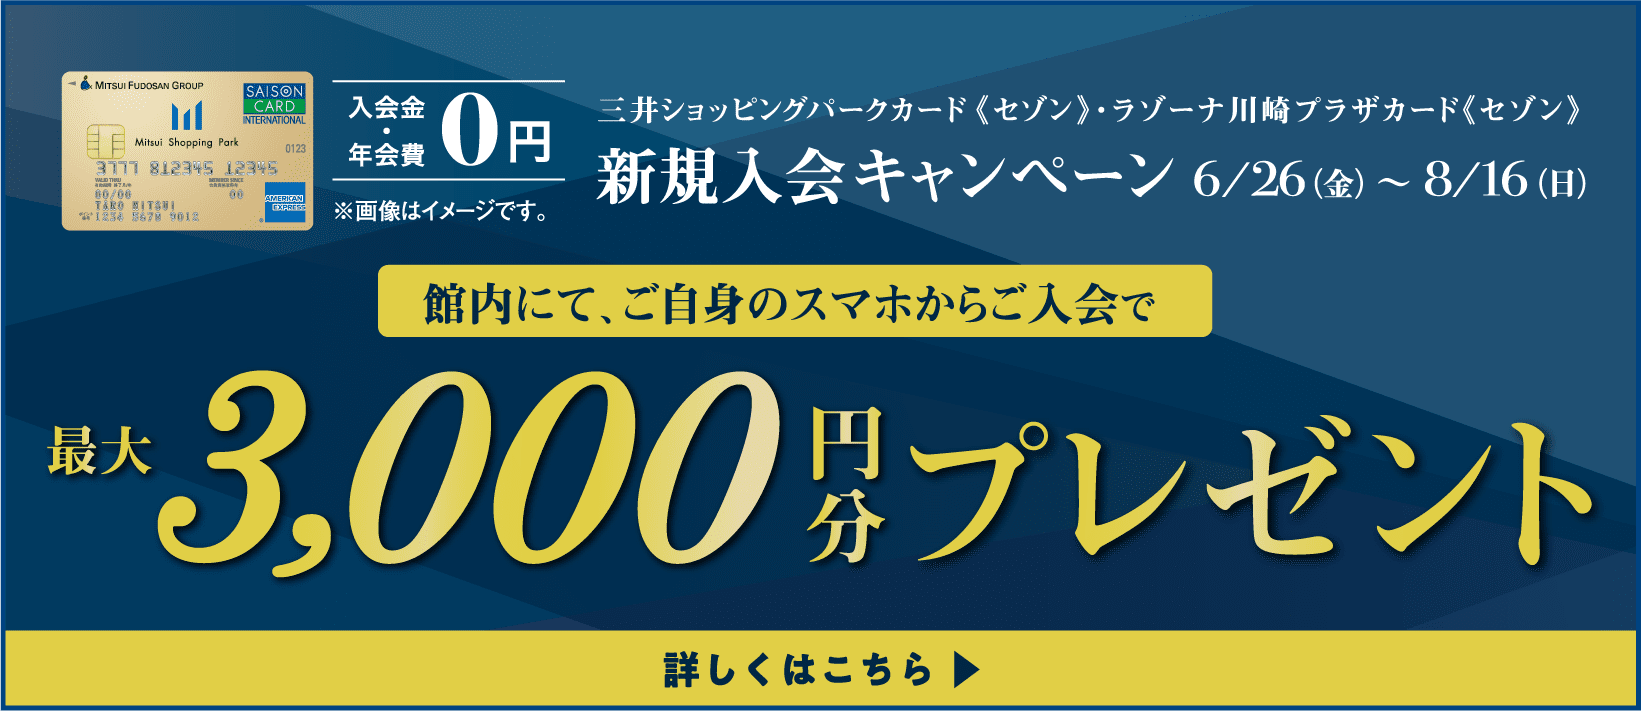 It is this present for new enrollment campaign Friday, June 26 - 8/16 Sunday up to 3,000 yen in detail